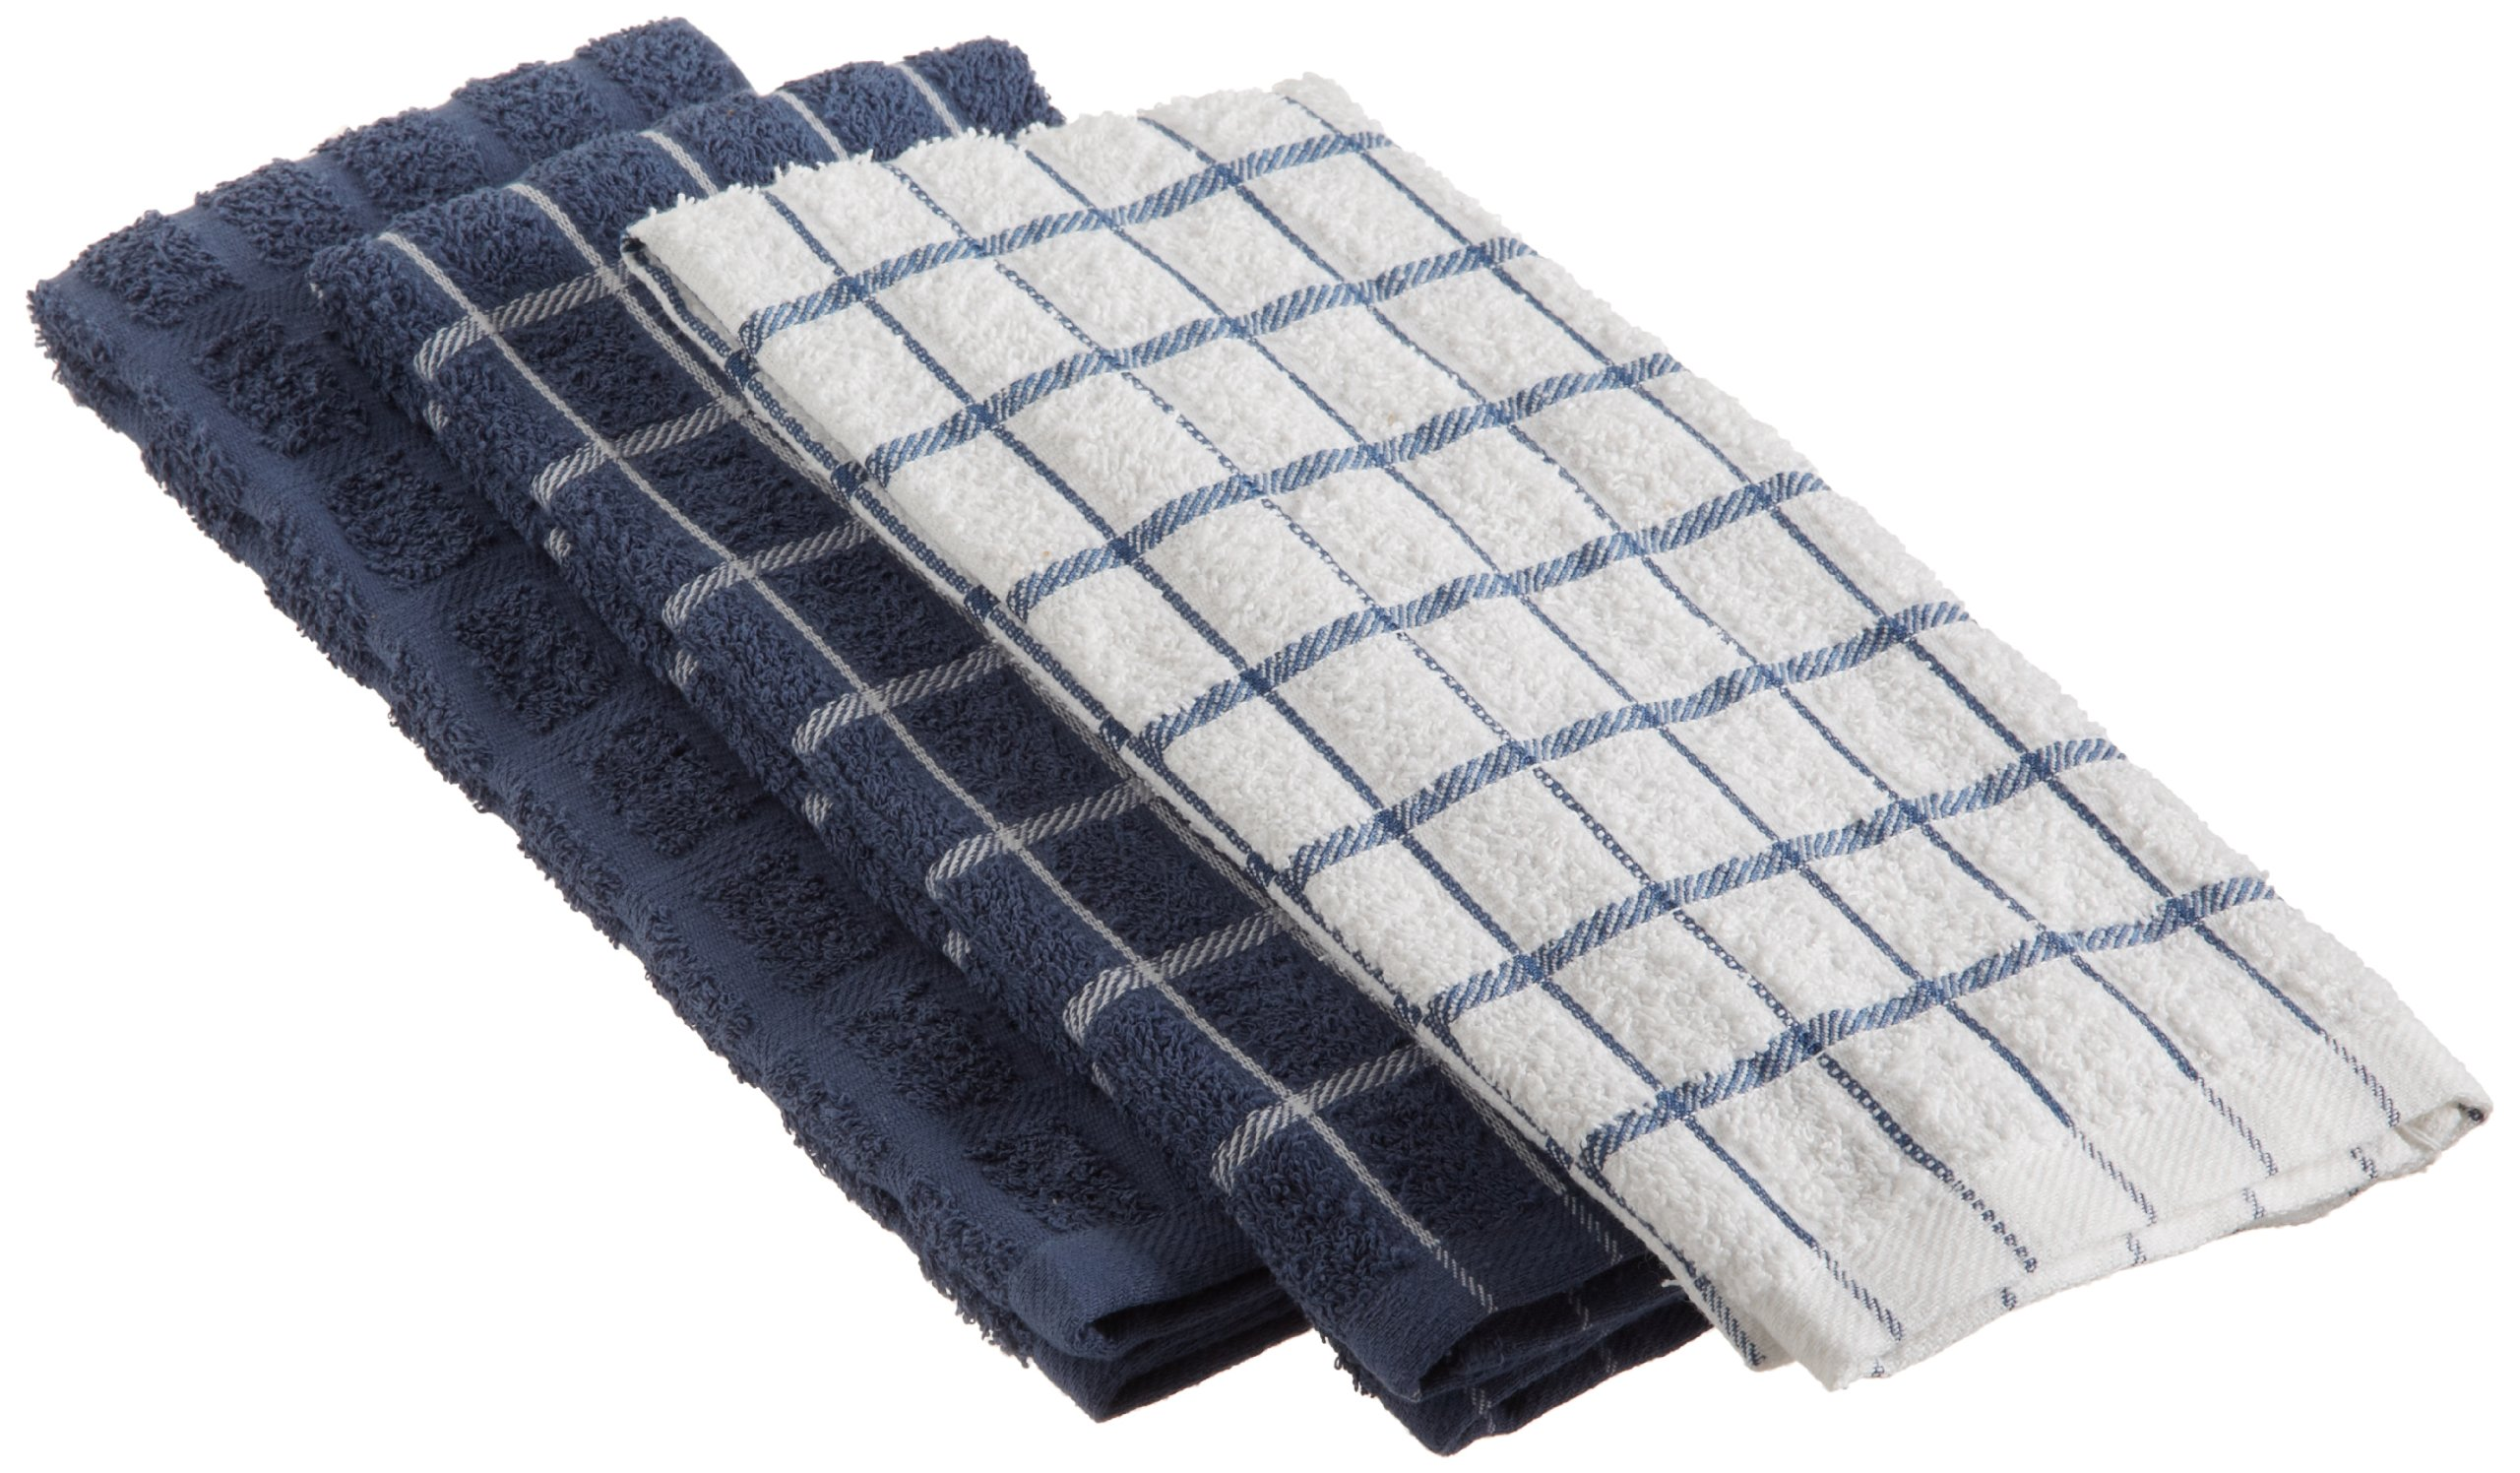 "Ritz 100% Cotton Terry Kitchen Dish Towels, Highly Absorbent, 25"" x 15"", 3-Pack, Federal Blue"